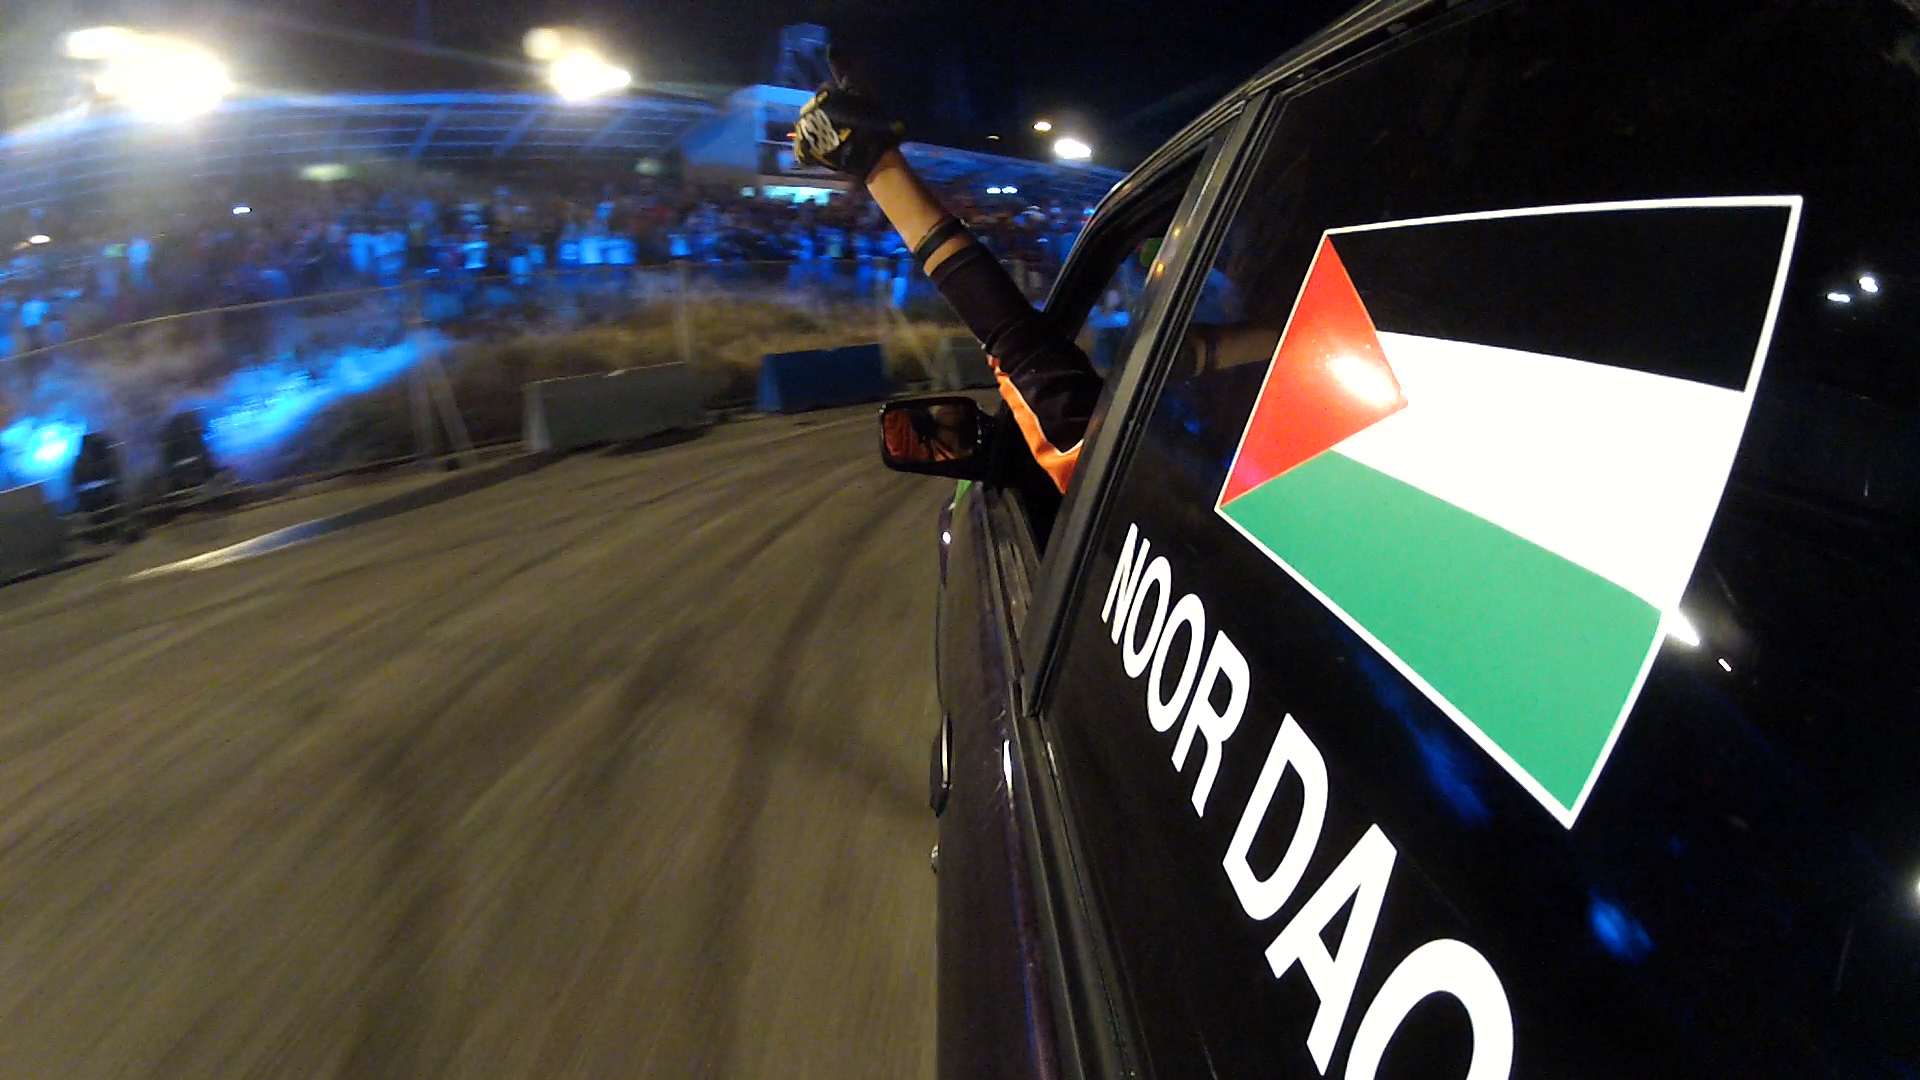 05 Noor gives a thumbs up as she completes a drift course in Jordan  - Credit Amber Fares.png